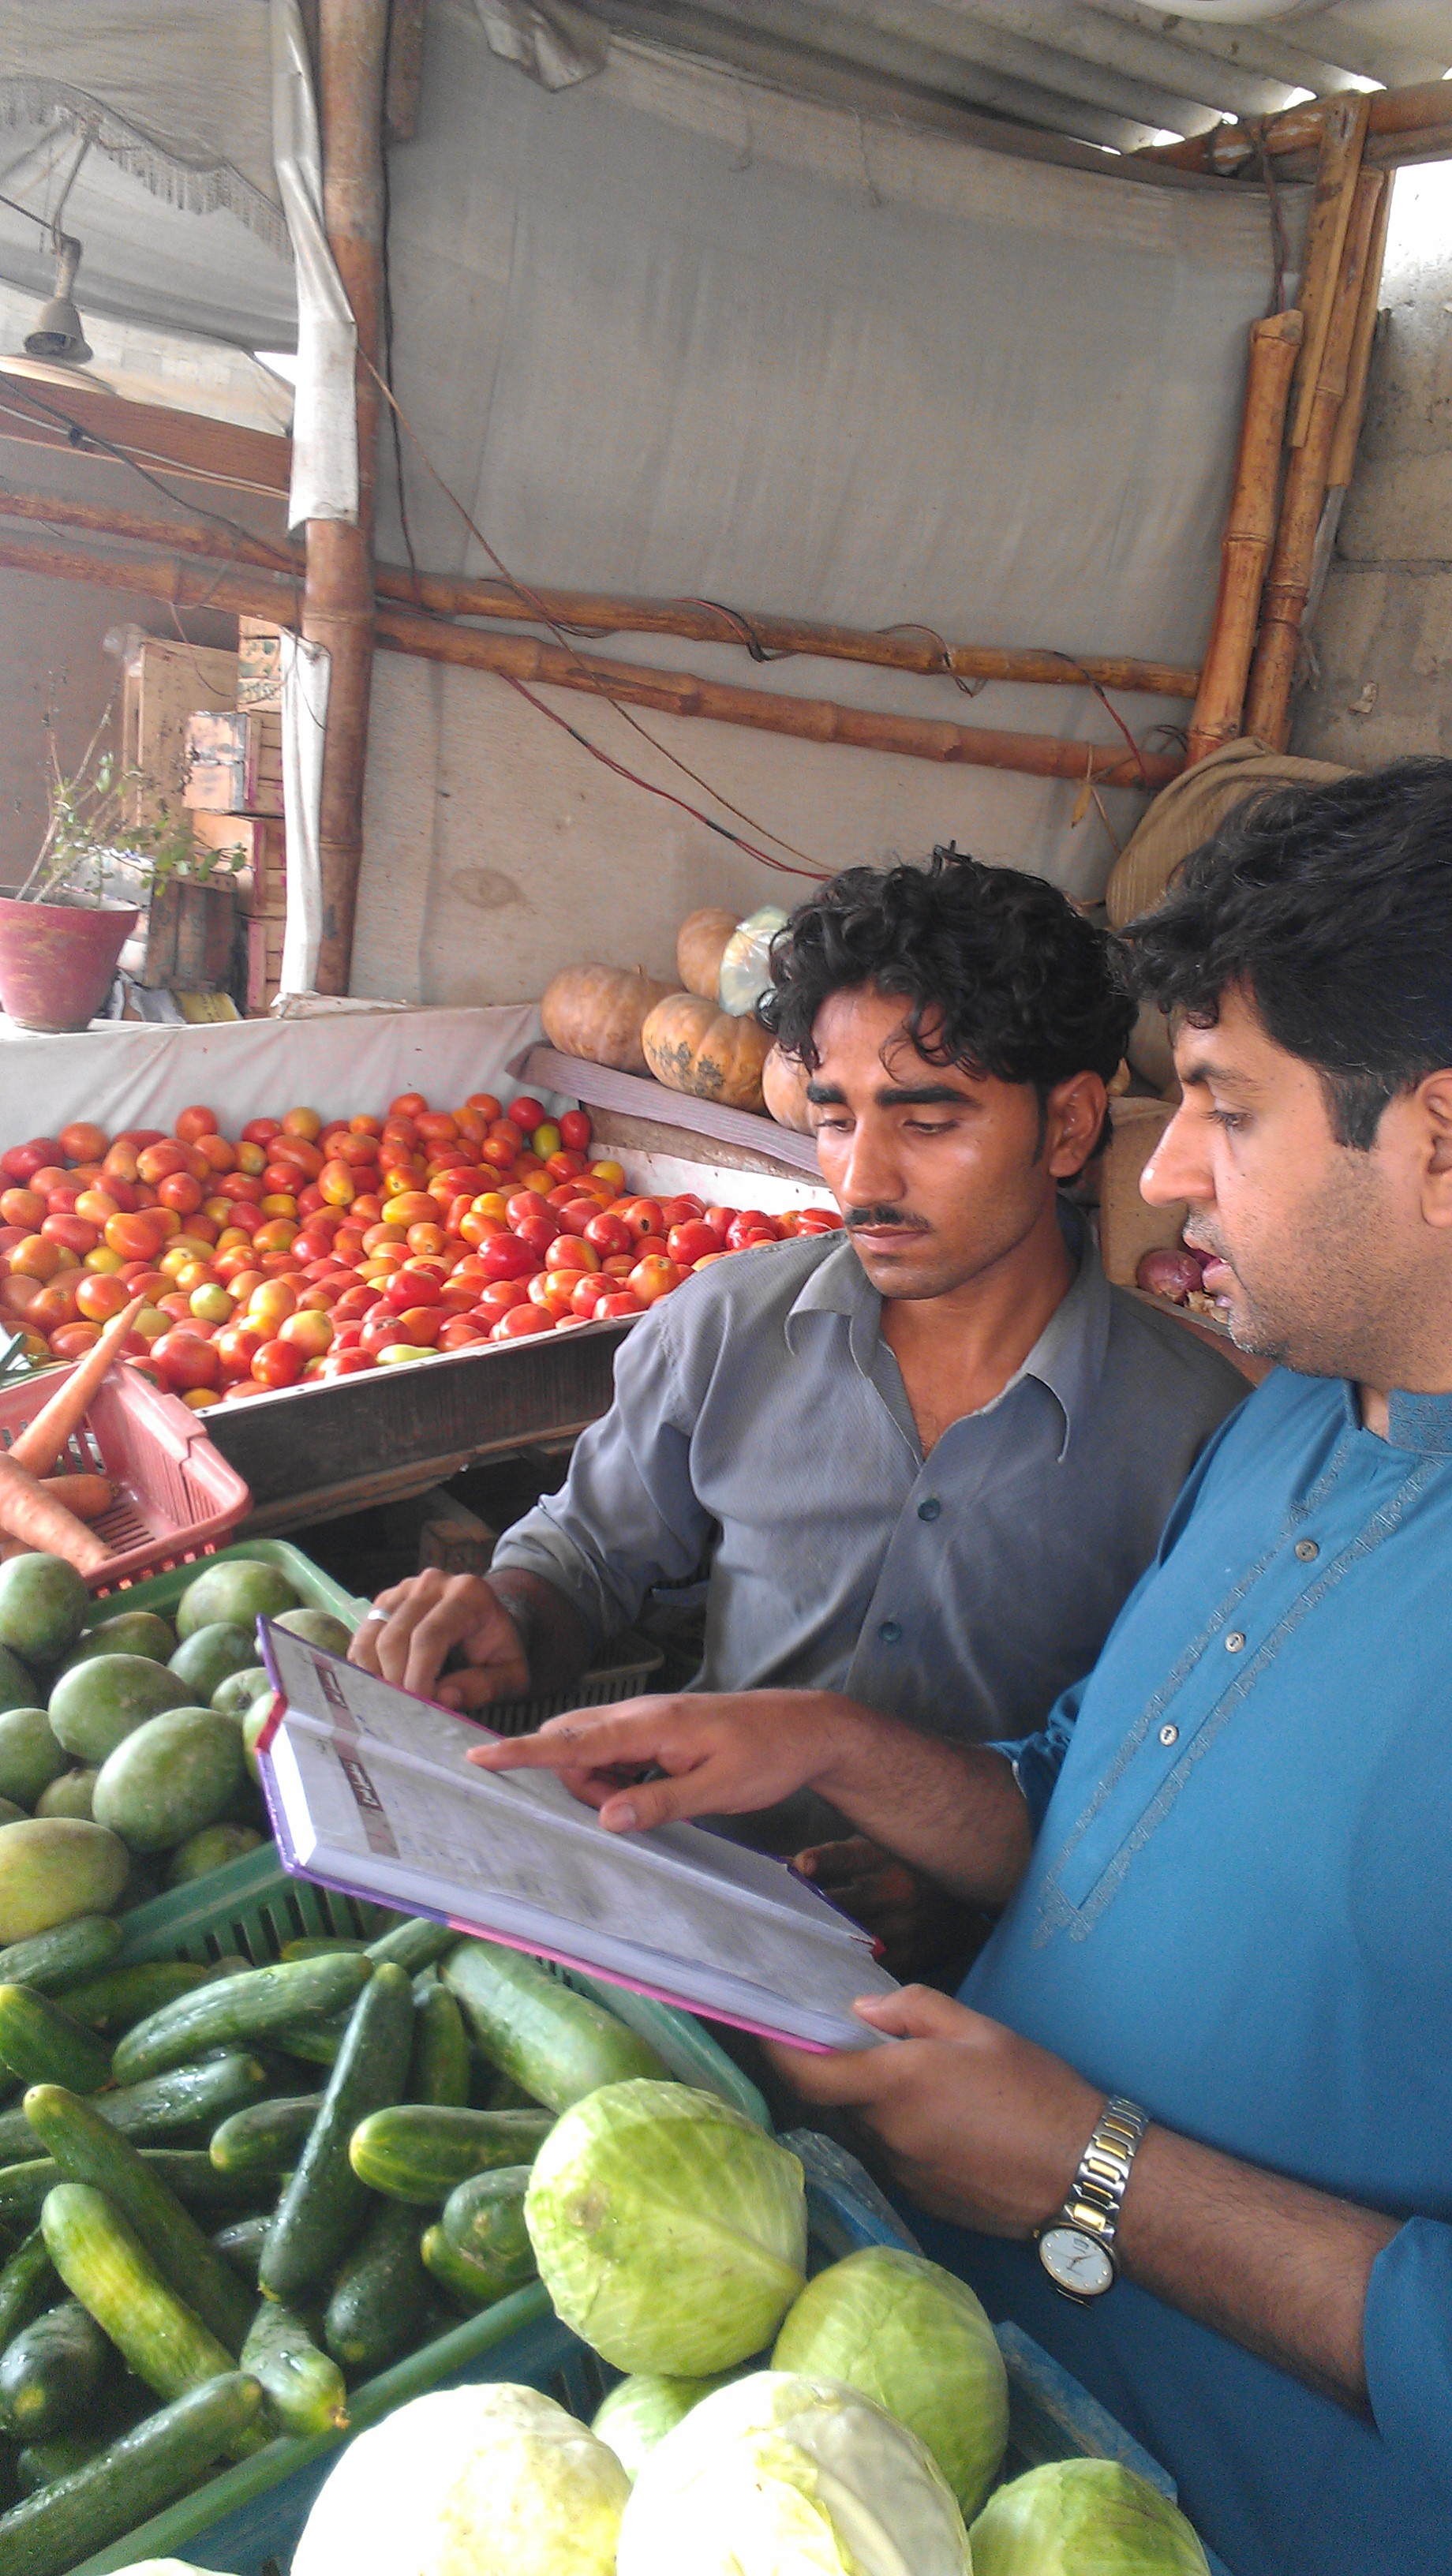 On-site training to help a vegetable seller secure his livelihood